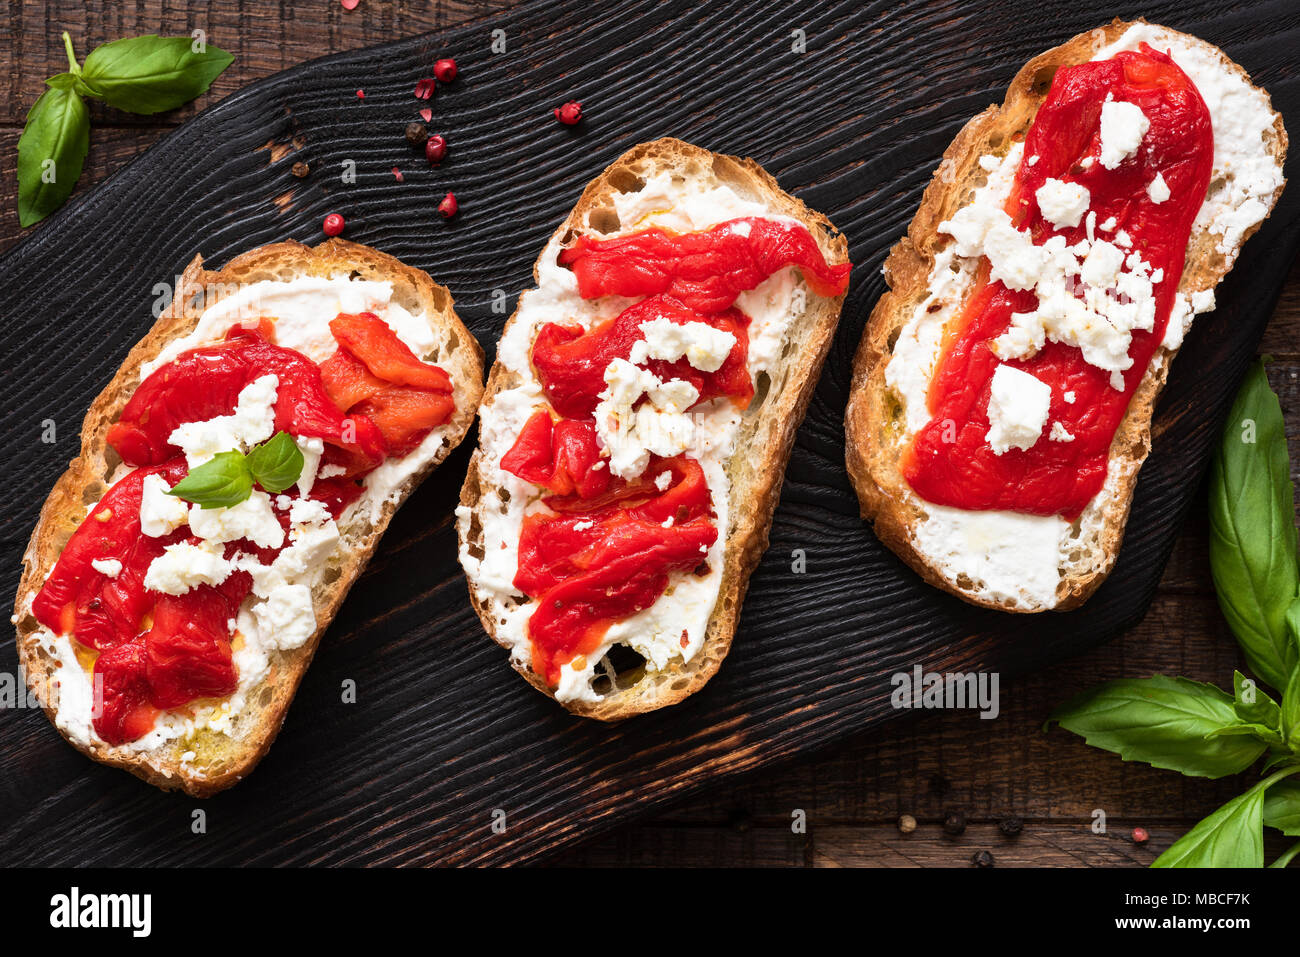 Bruschetta with roasted pepper, feta cheese and olive oil on old wooden cutting board, top view. Italian cuisine appetizer, starter or antipasti - Stock Image